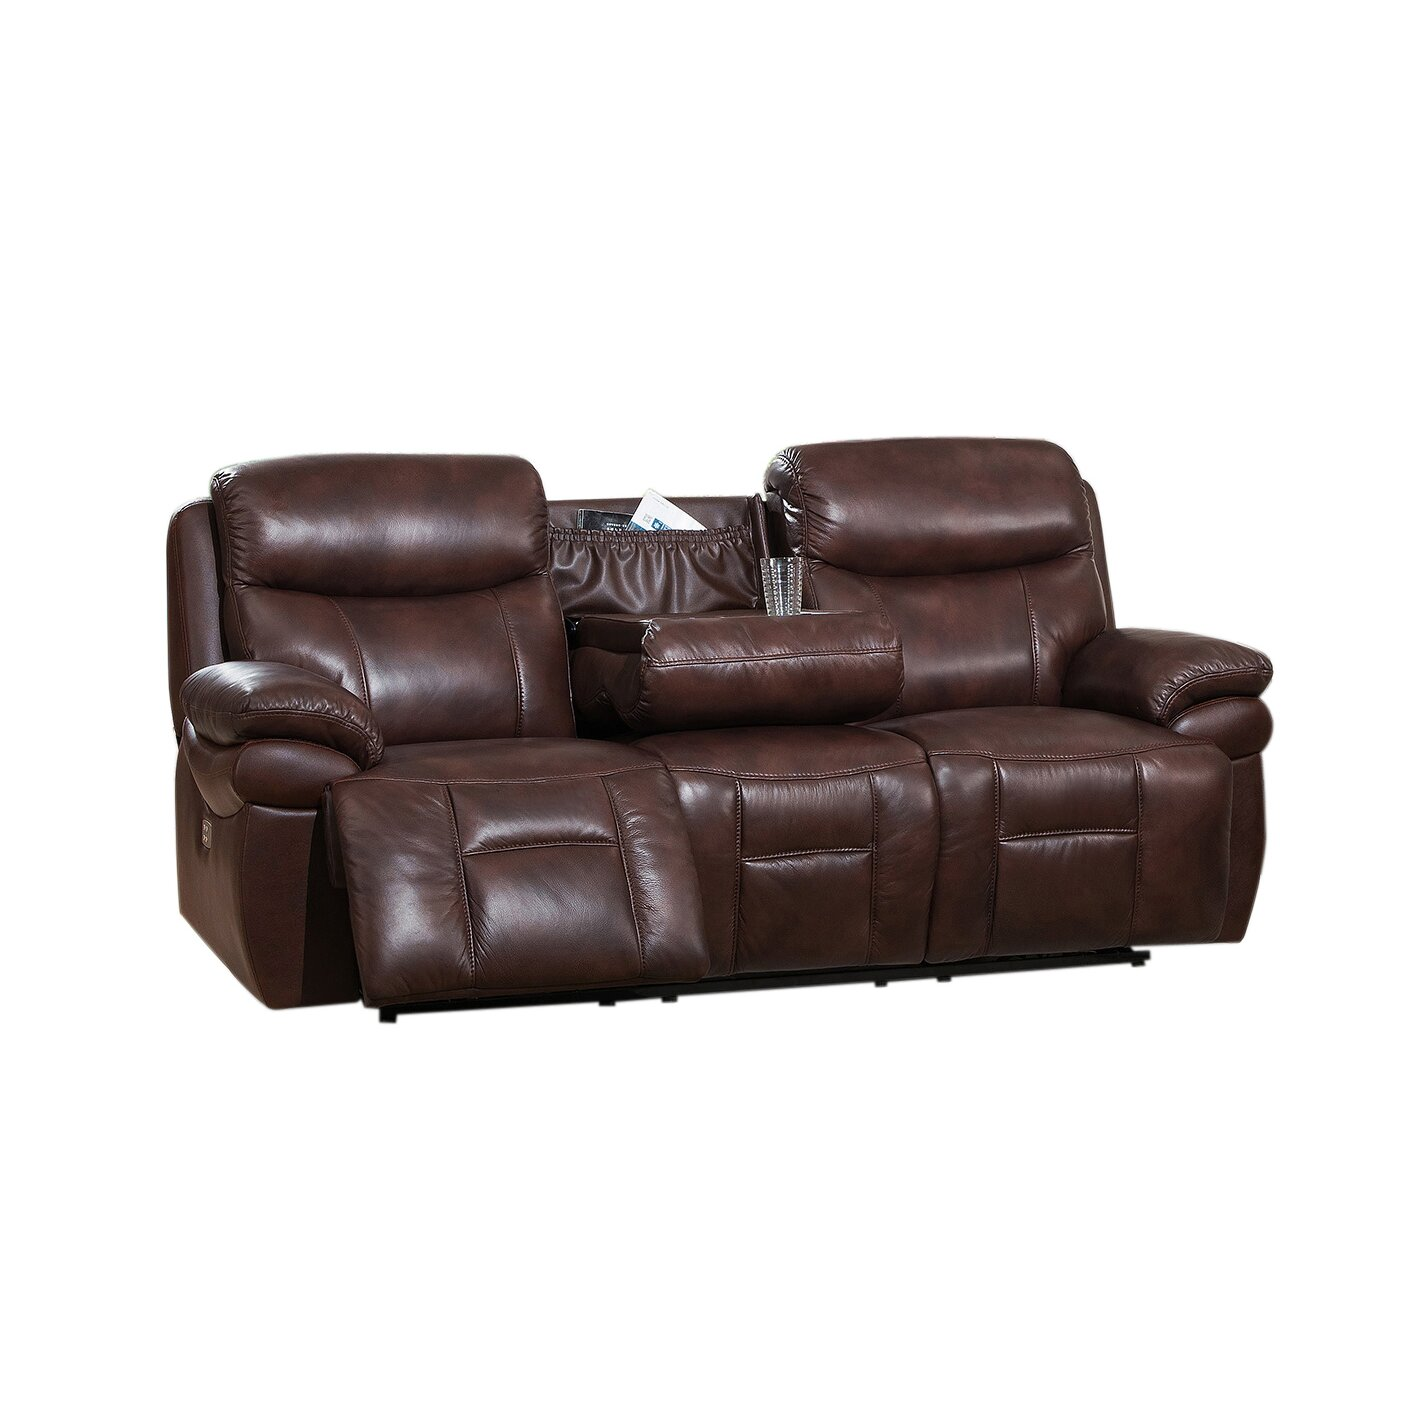 Amax Sanford 2 Piece Leather Power Reclining Living Room